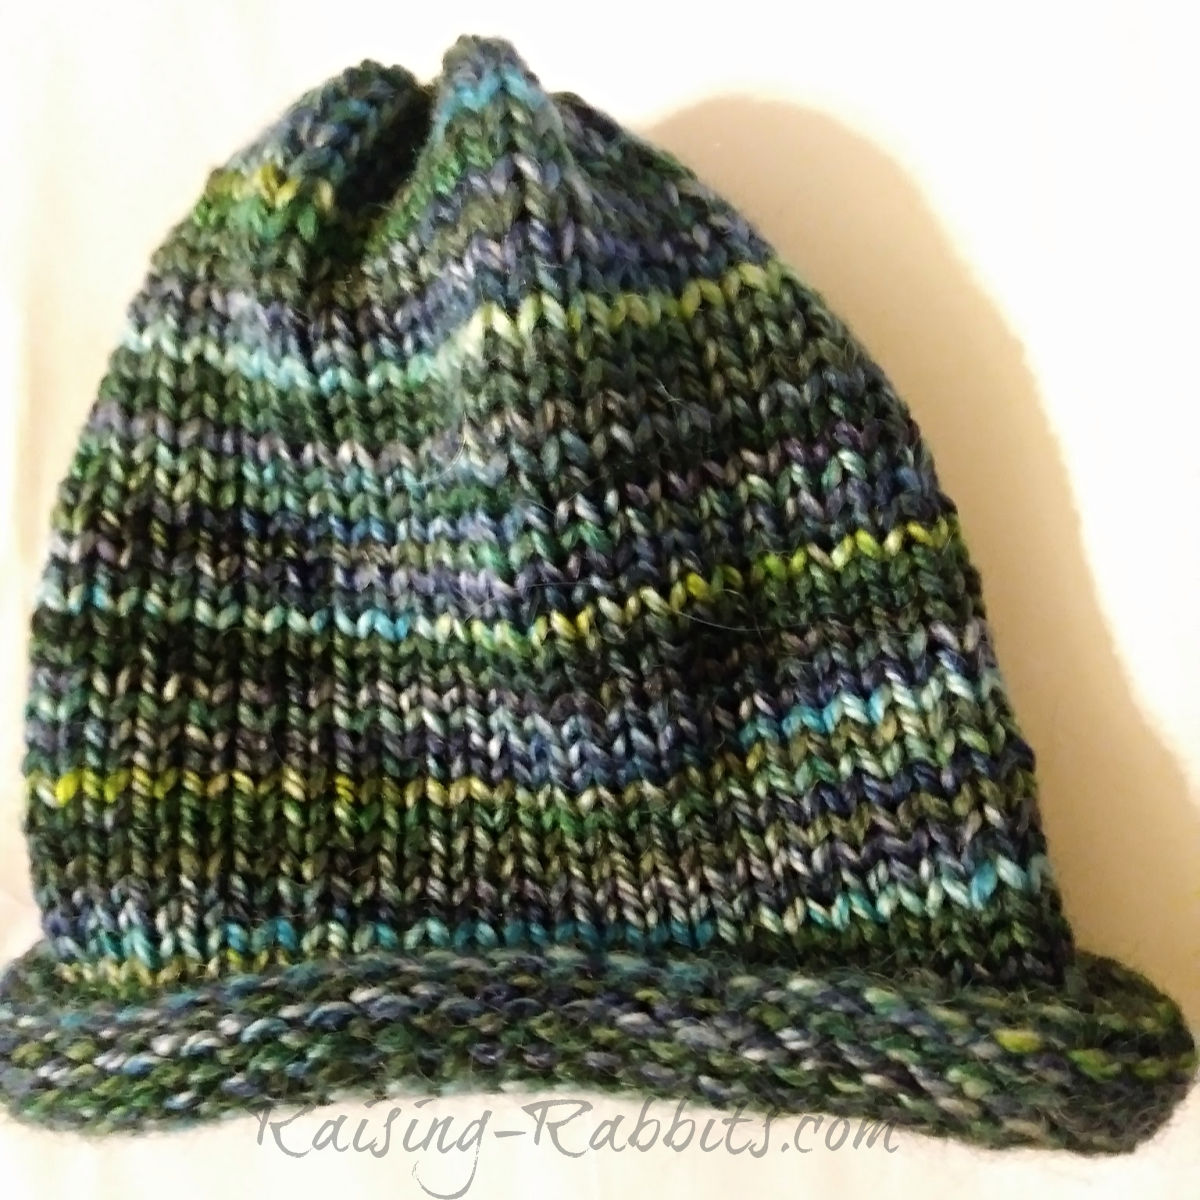 Green-turquoise-navy multi-colored beanie cap, one size fits all.